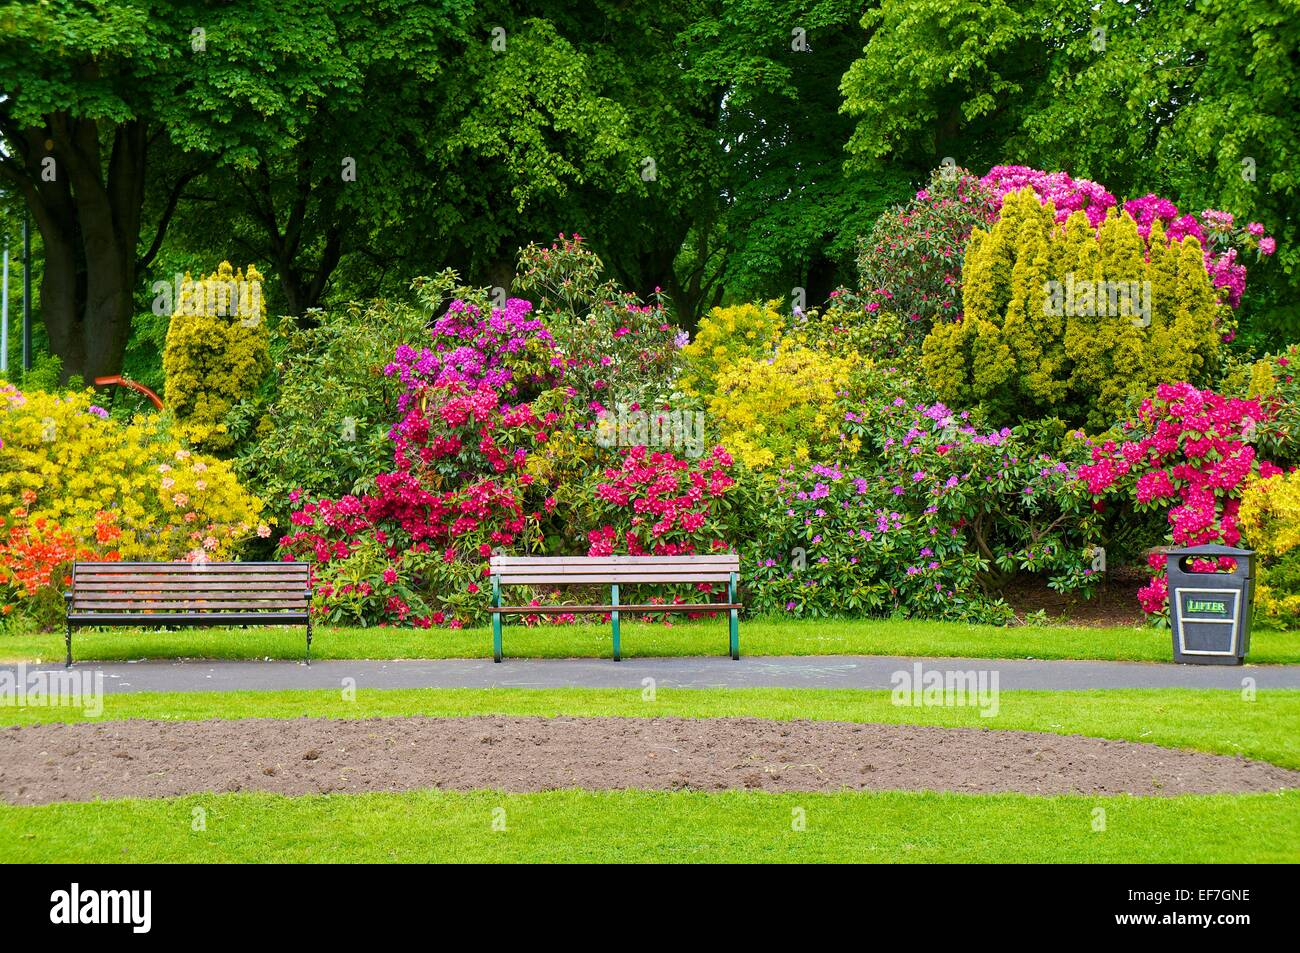 Rhododendron bushes flowering behind park benches. Bitts Park, Carlisle Cumbria, England, UK. - Stock Image